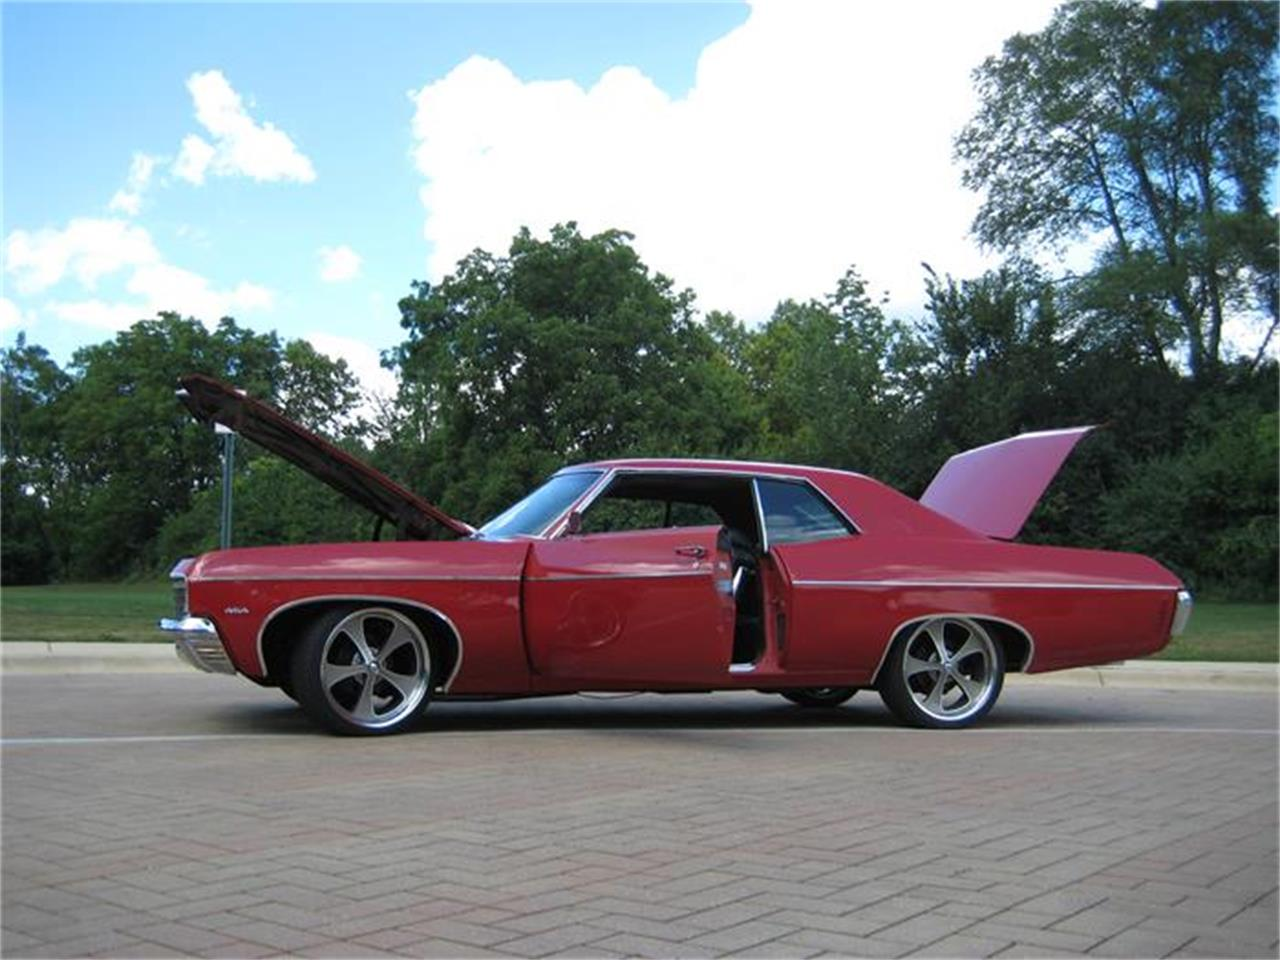 Large Picture of Classic 1970 Chevrolet Impala - $22,995.00 - F45R